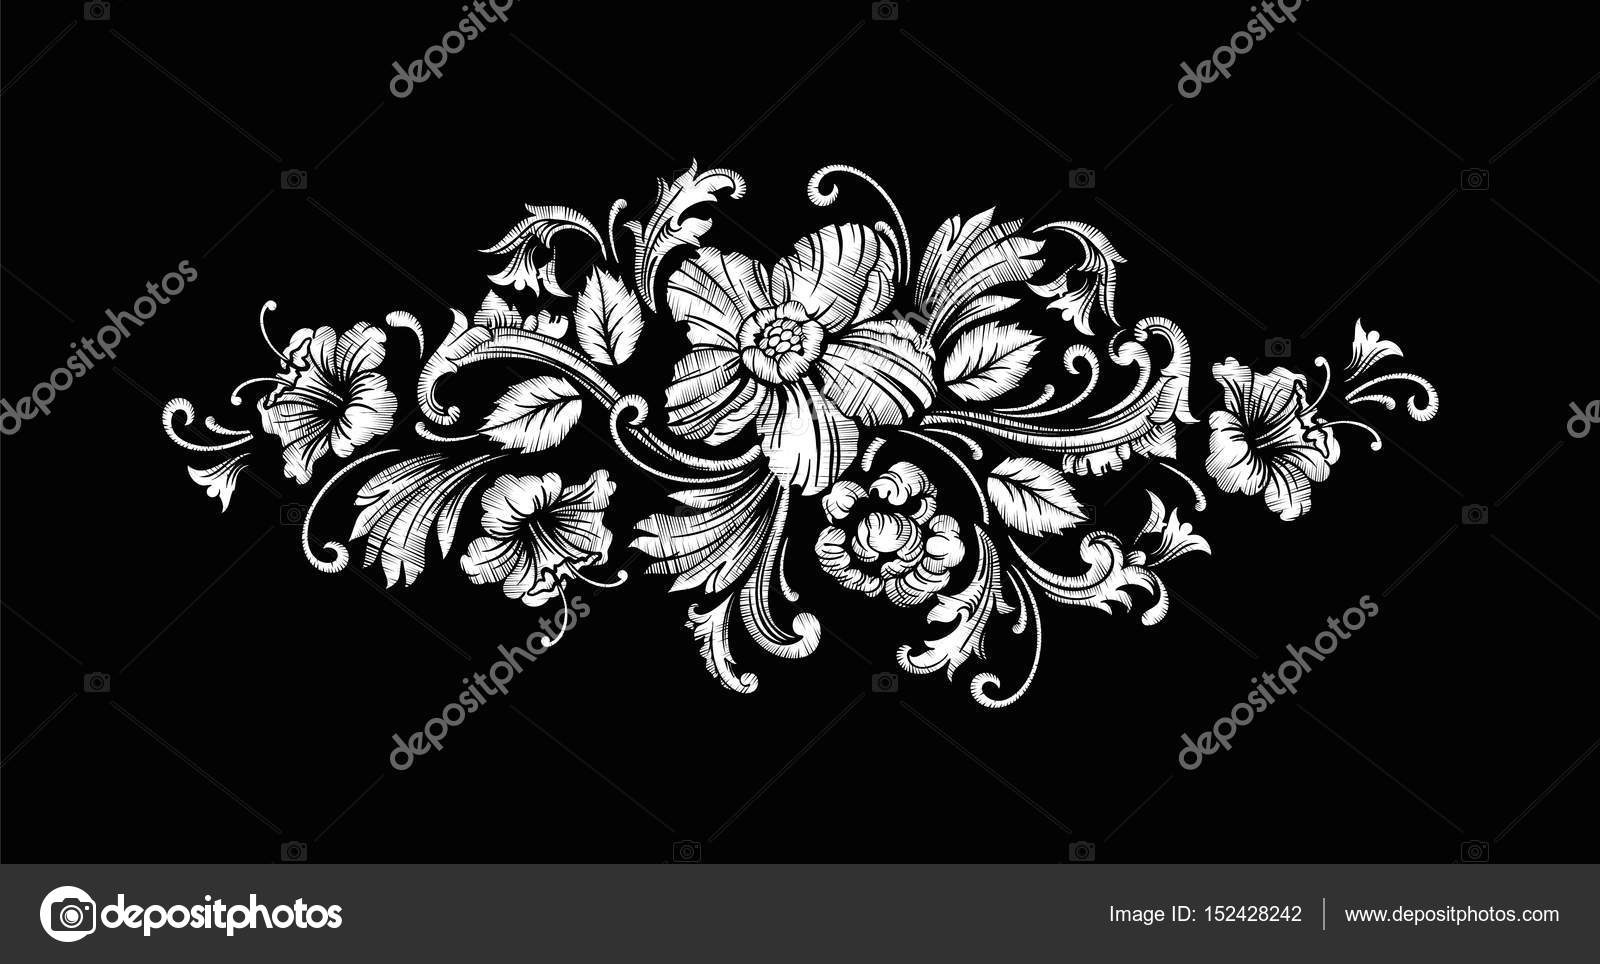 Embroidery Design in Baroque Style. Vector — Stock Vector ...